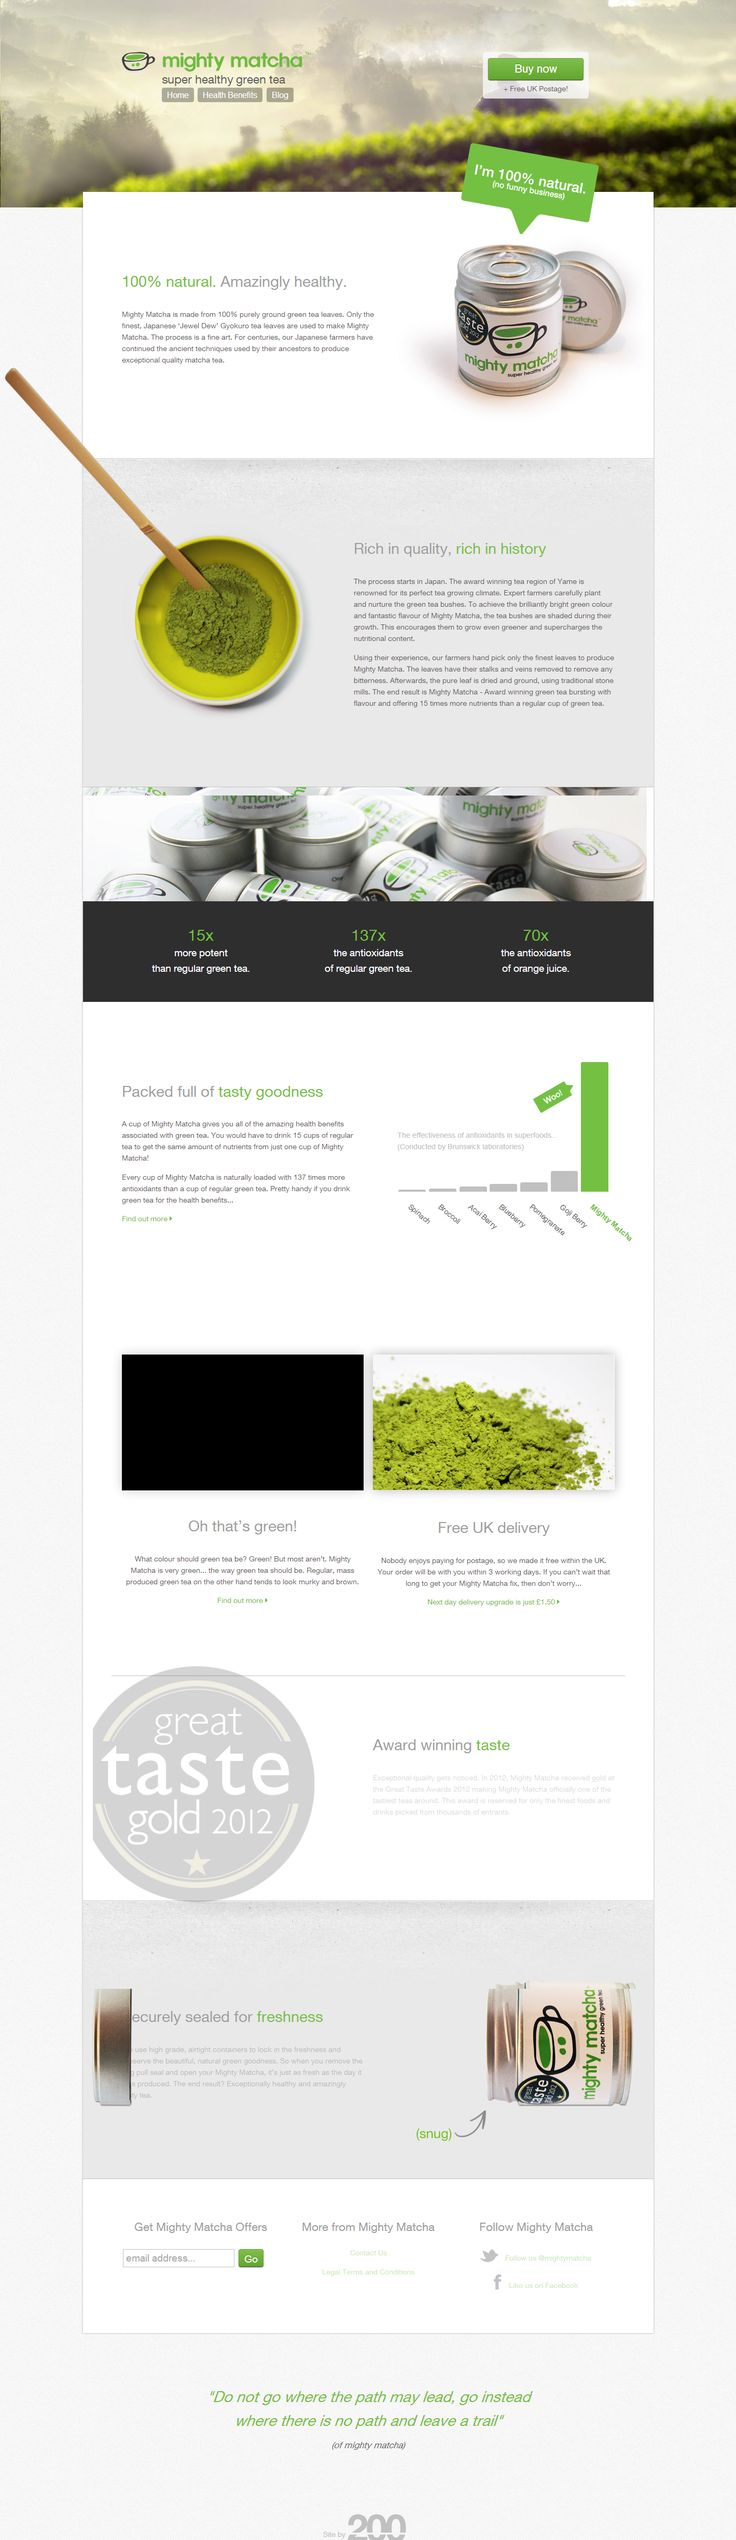 http://www.mightymatcha.com/ | #webdesign #it #web #design #layout #userinterface #website #webdesign < repinned by www.BlickeDeeler.de | Take a look at www.WebsiteDesign-Hamburg.de